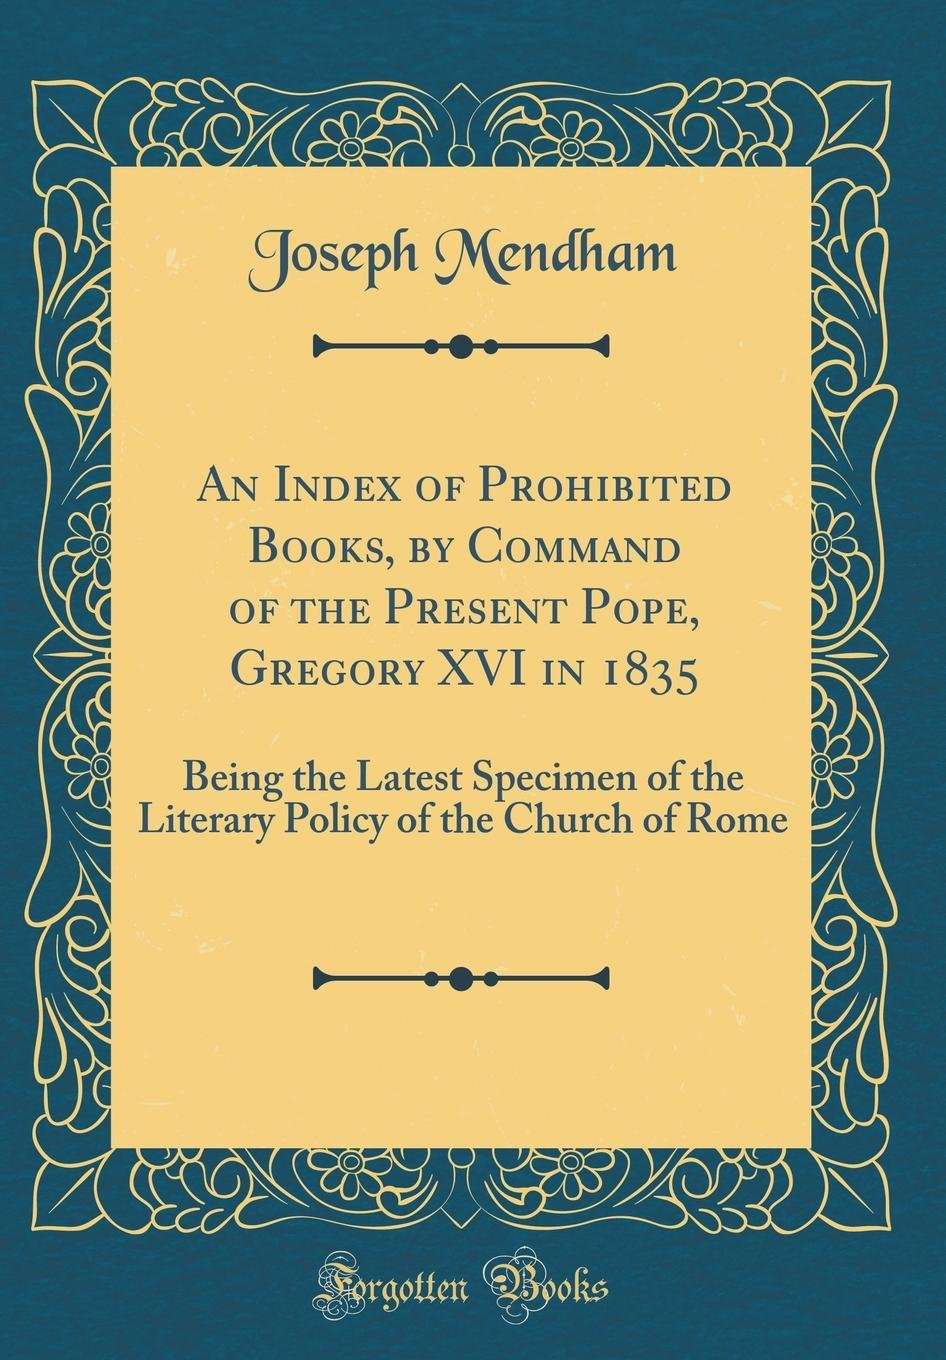 An Index of Prohibited Books, by Command of the Present Pope, Gregory XVI in 1835: Being the Latest Specimen of the Literary Policy of the Church of Rome (Classic Reprint) PDF